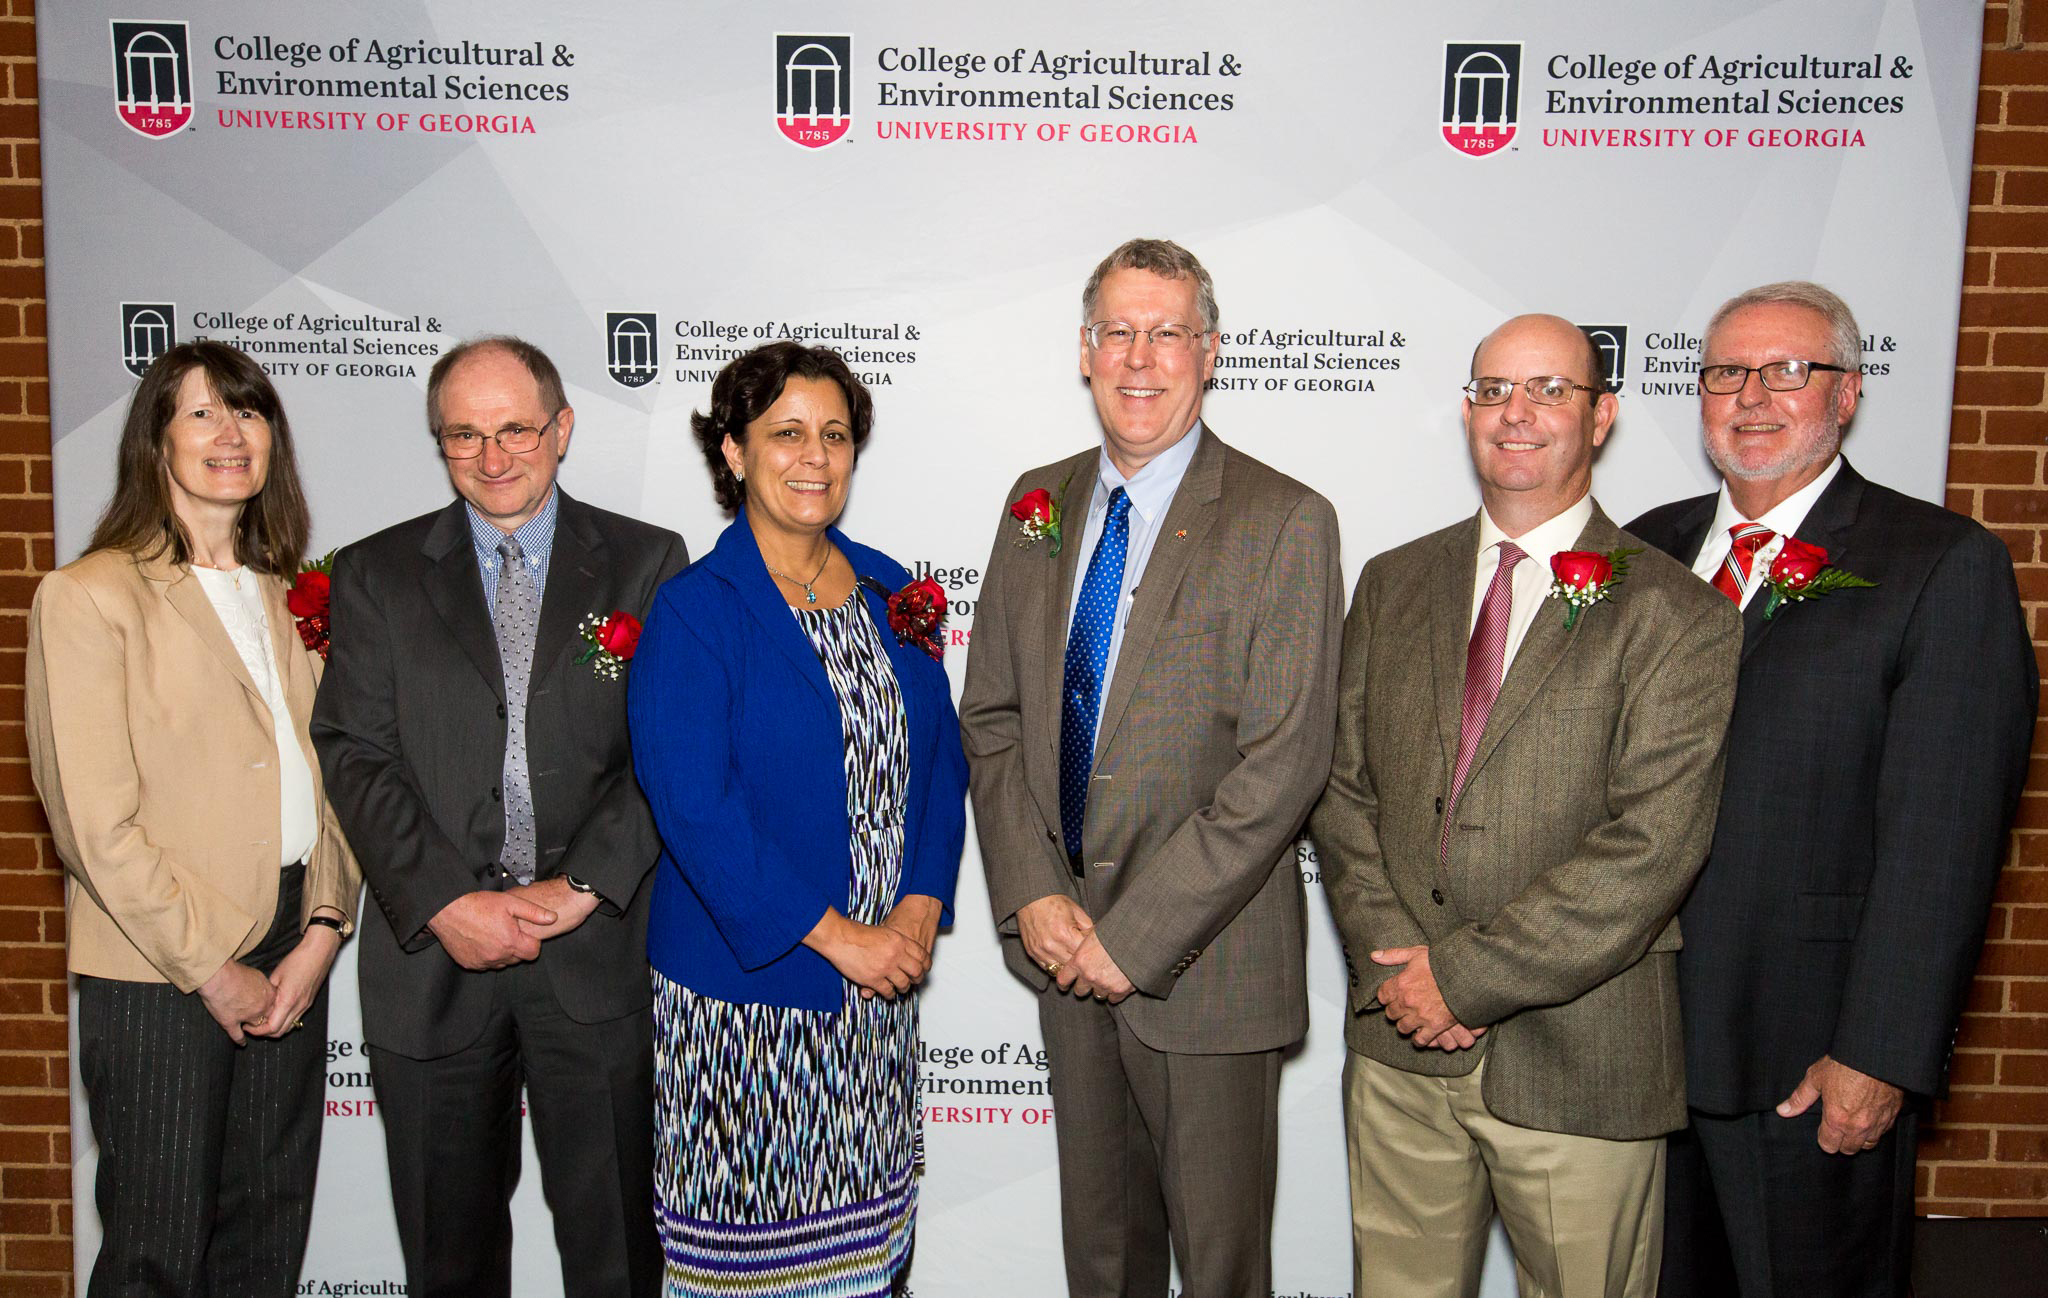 College of Agricultural and Environmental Sciences Dean and Director Sam Pardue (center) congratulates recipients of the CAES D.W. Brooks Awards Nov. 7. This year's winners include, from left, Professor Katrien Devos, Professor Ignacy Misztal, Professor Maria Navarro, UGA Extension Agriculture and Natural Resources Program Coordinator Wade Parker and Calvin Perry, superintendent of UGA's C.M. Stripling Irrigation Research Park.